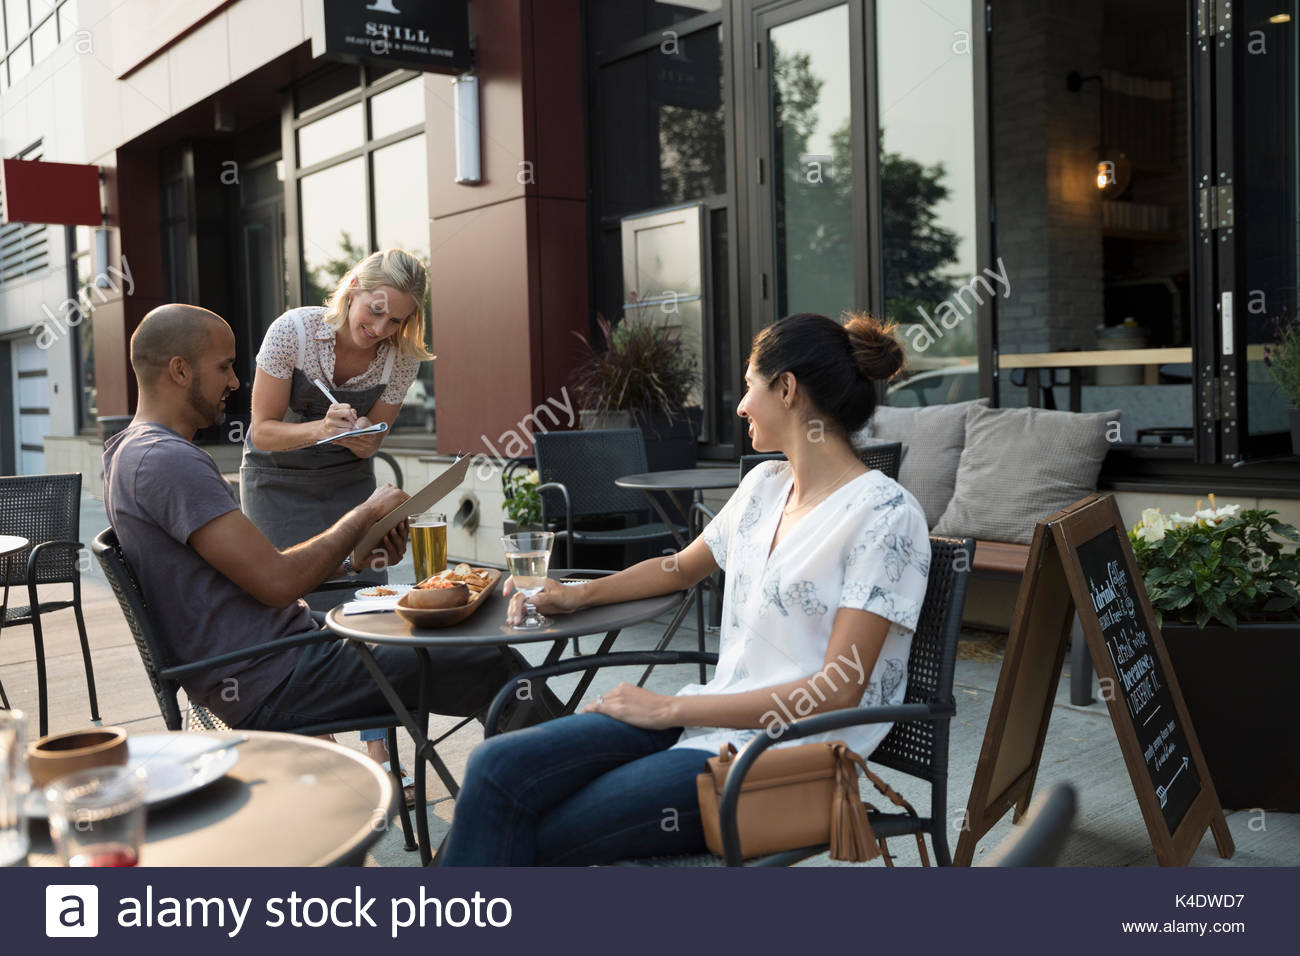 Waitress taking order from couple at table at sidewalk cafe Stock Photo